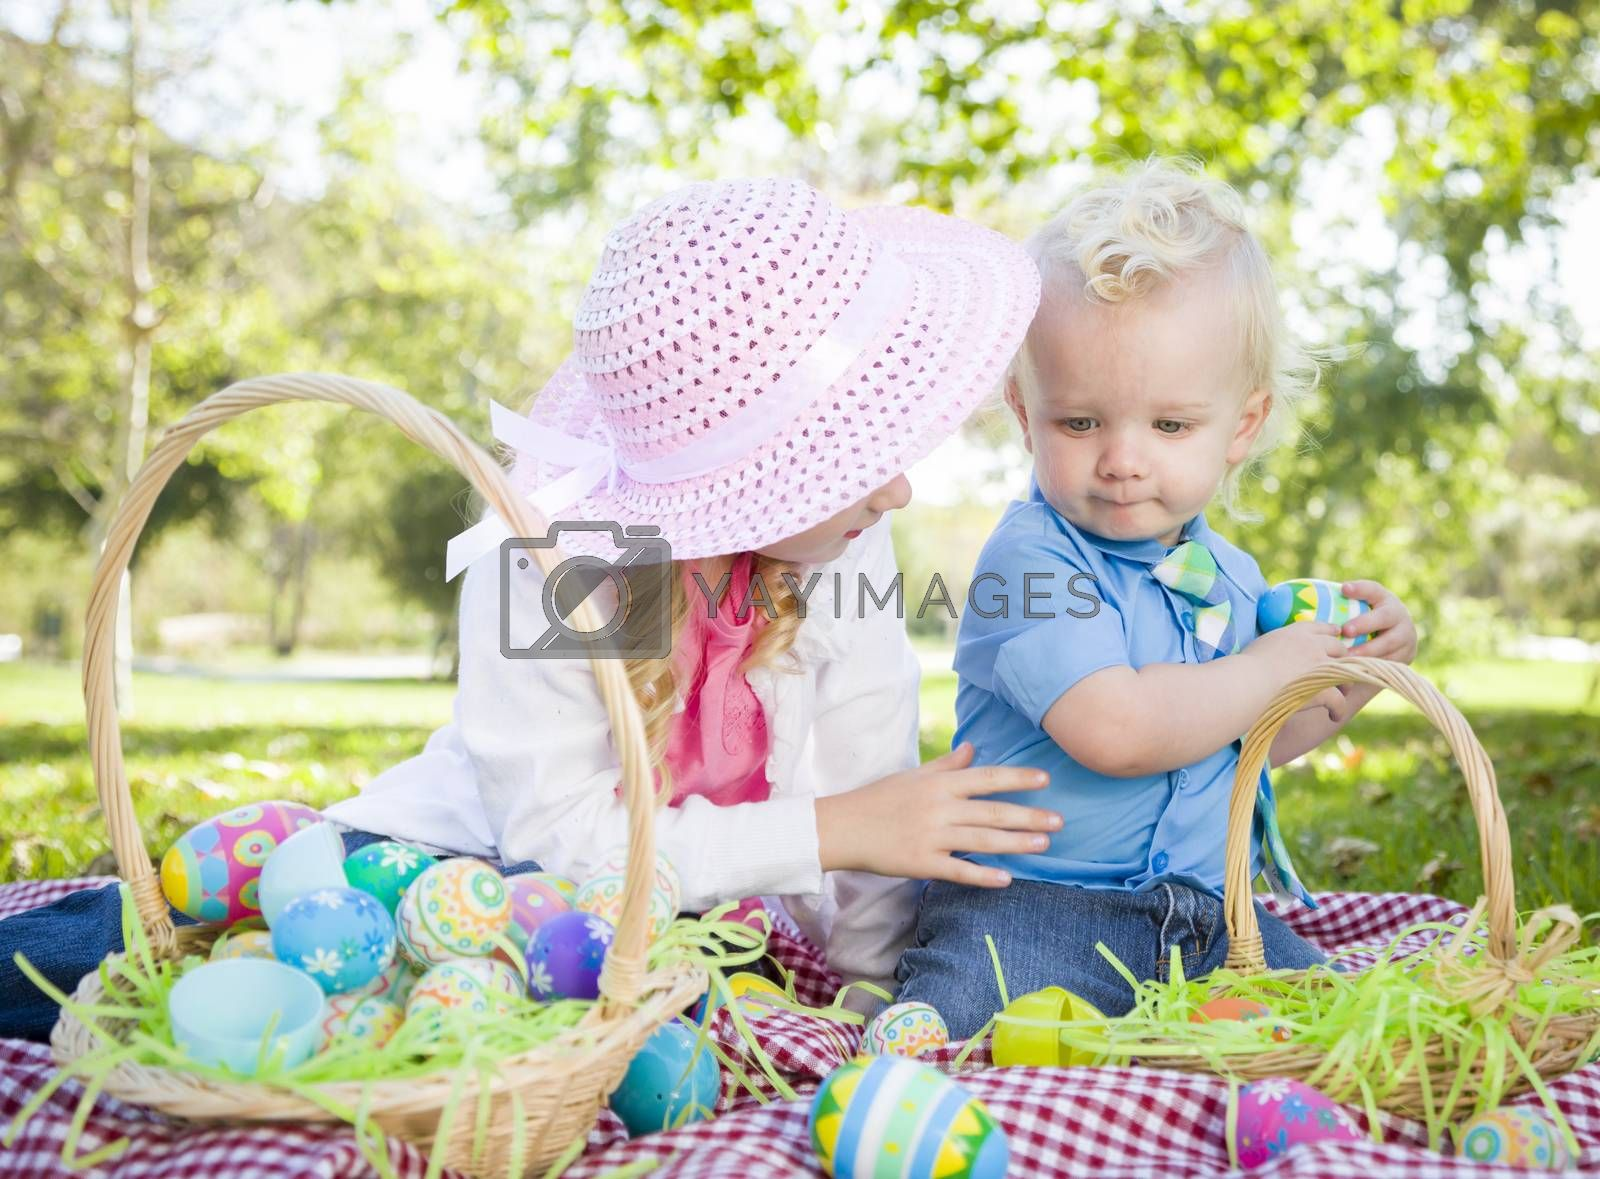 Cute Young Brother and Sister Enjoying Their Easter Eggs Outside in the Park Together.